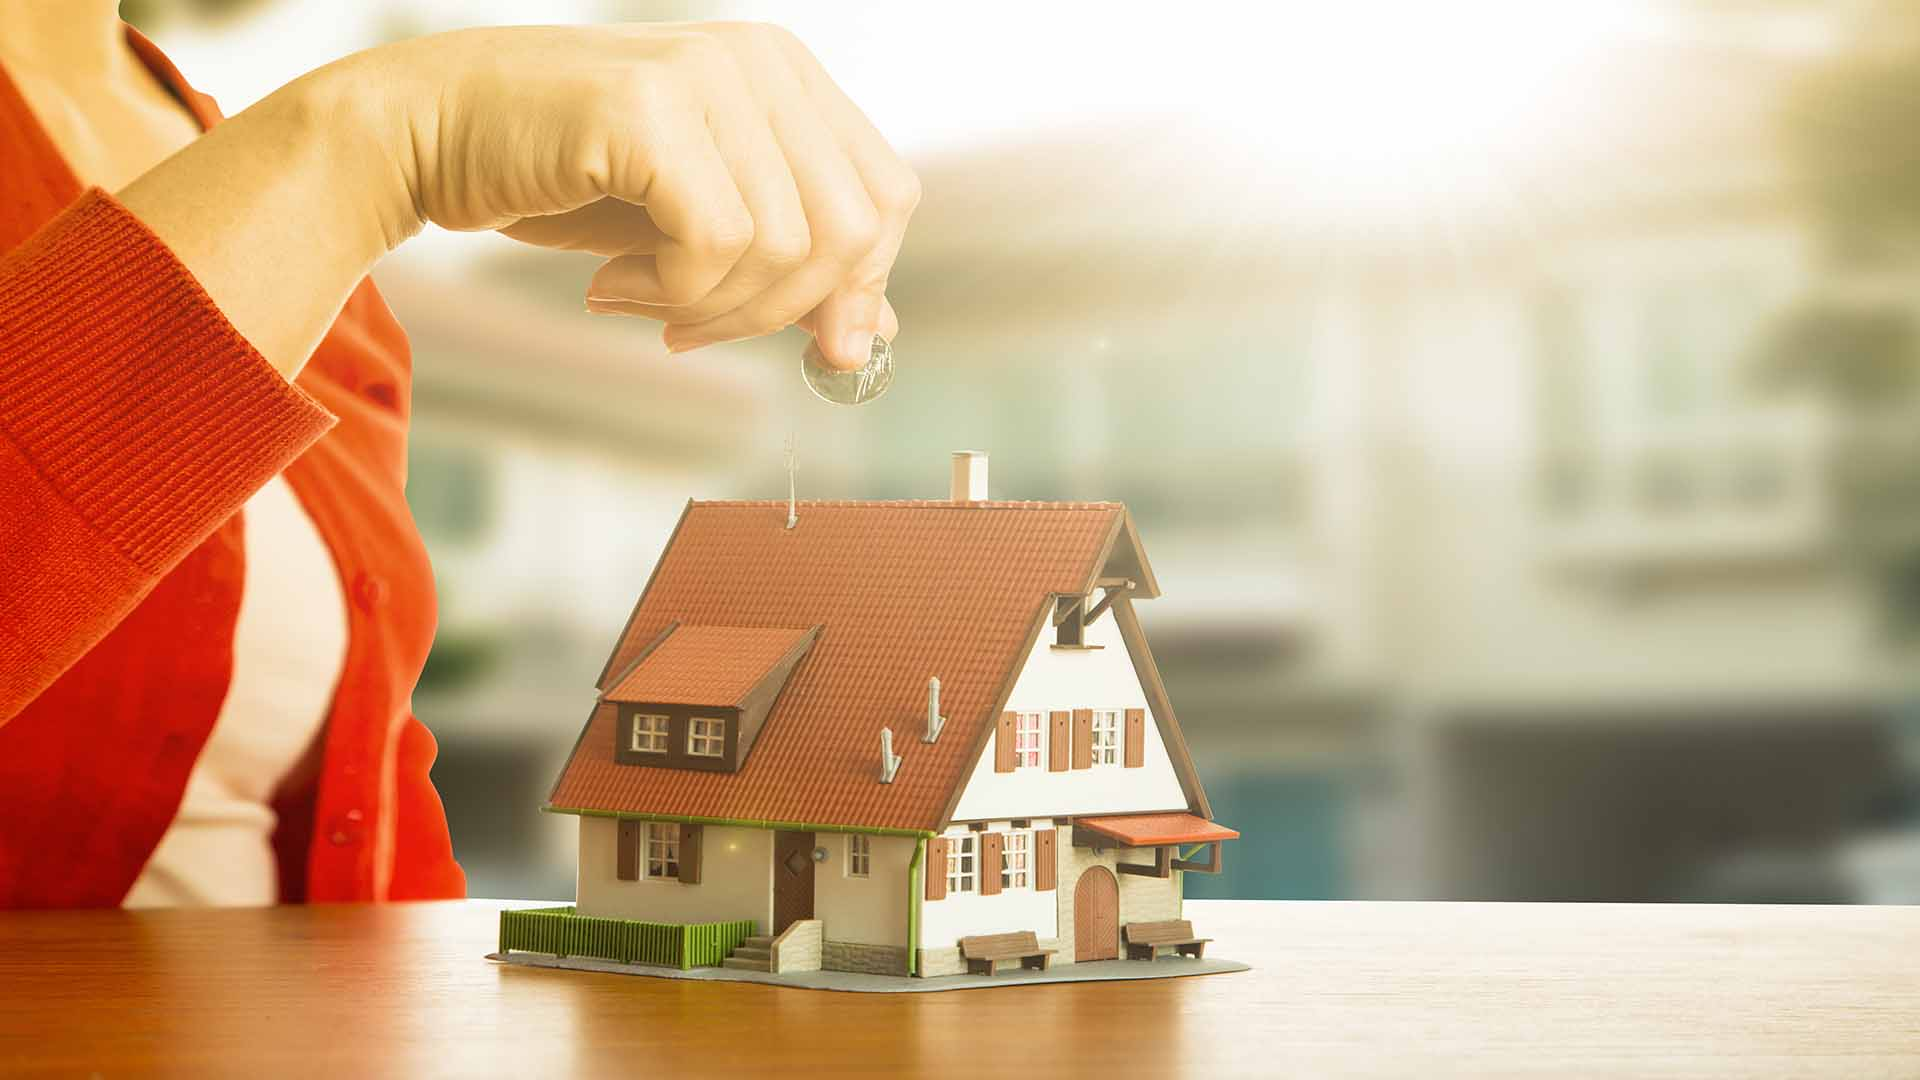 Things You Should Check Before Investing In Real Estate